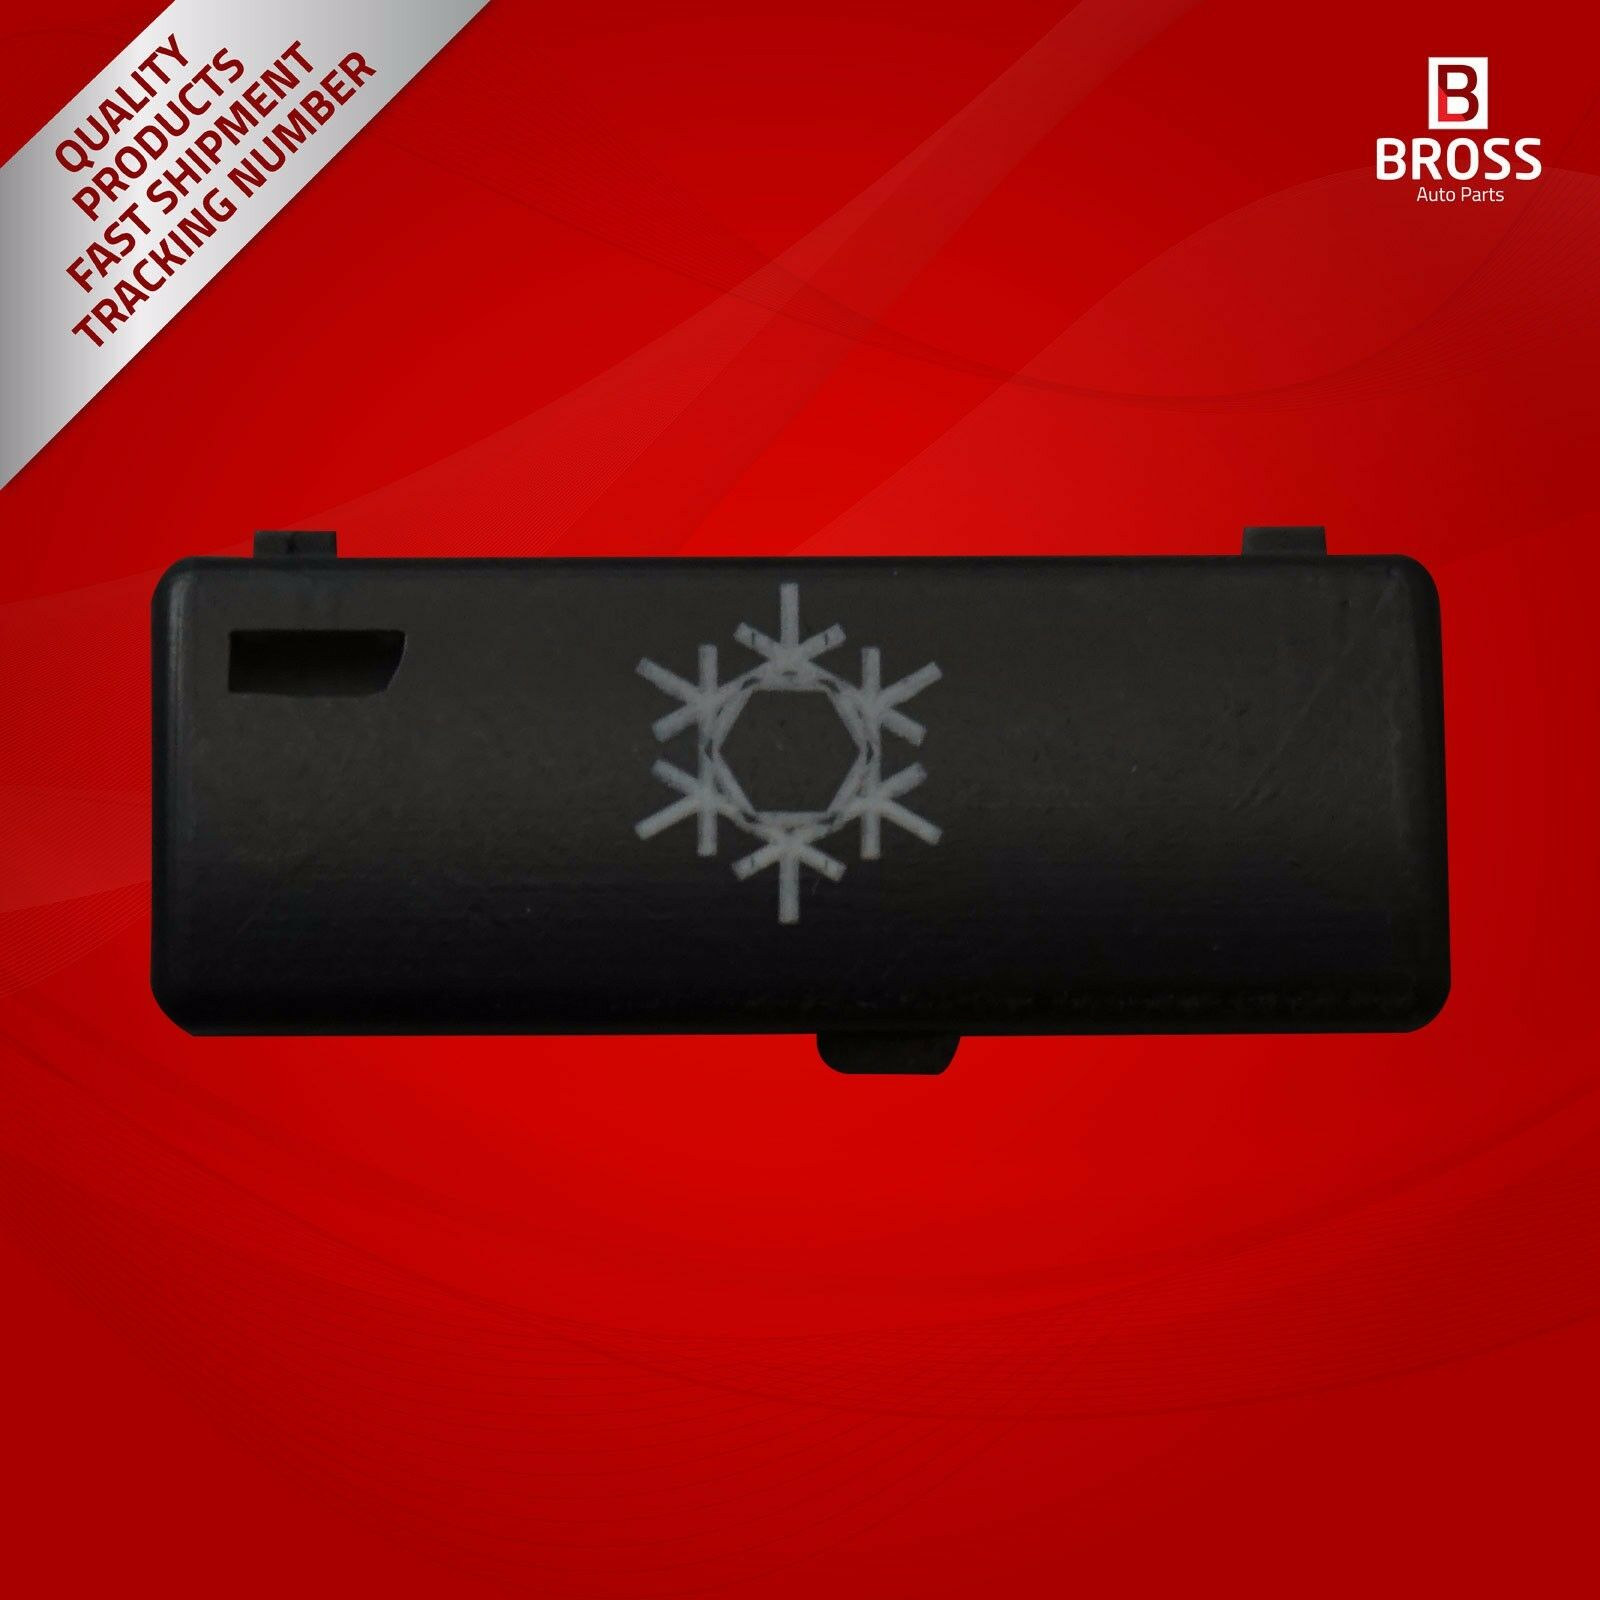 BDP88-8 1 Stuk Heater Climate Control Airconditioning Switch Knop Cover #8 Voor 5 Serie X5 E53 2000- 2007 E39 1995-2003